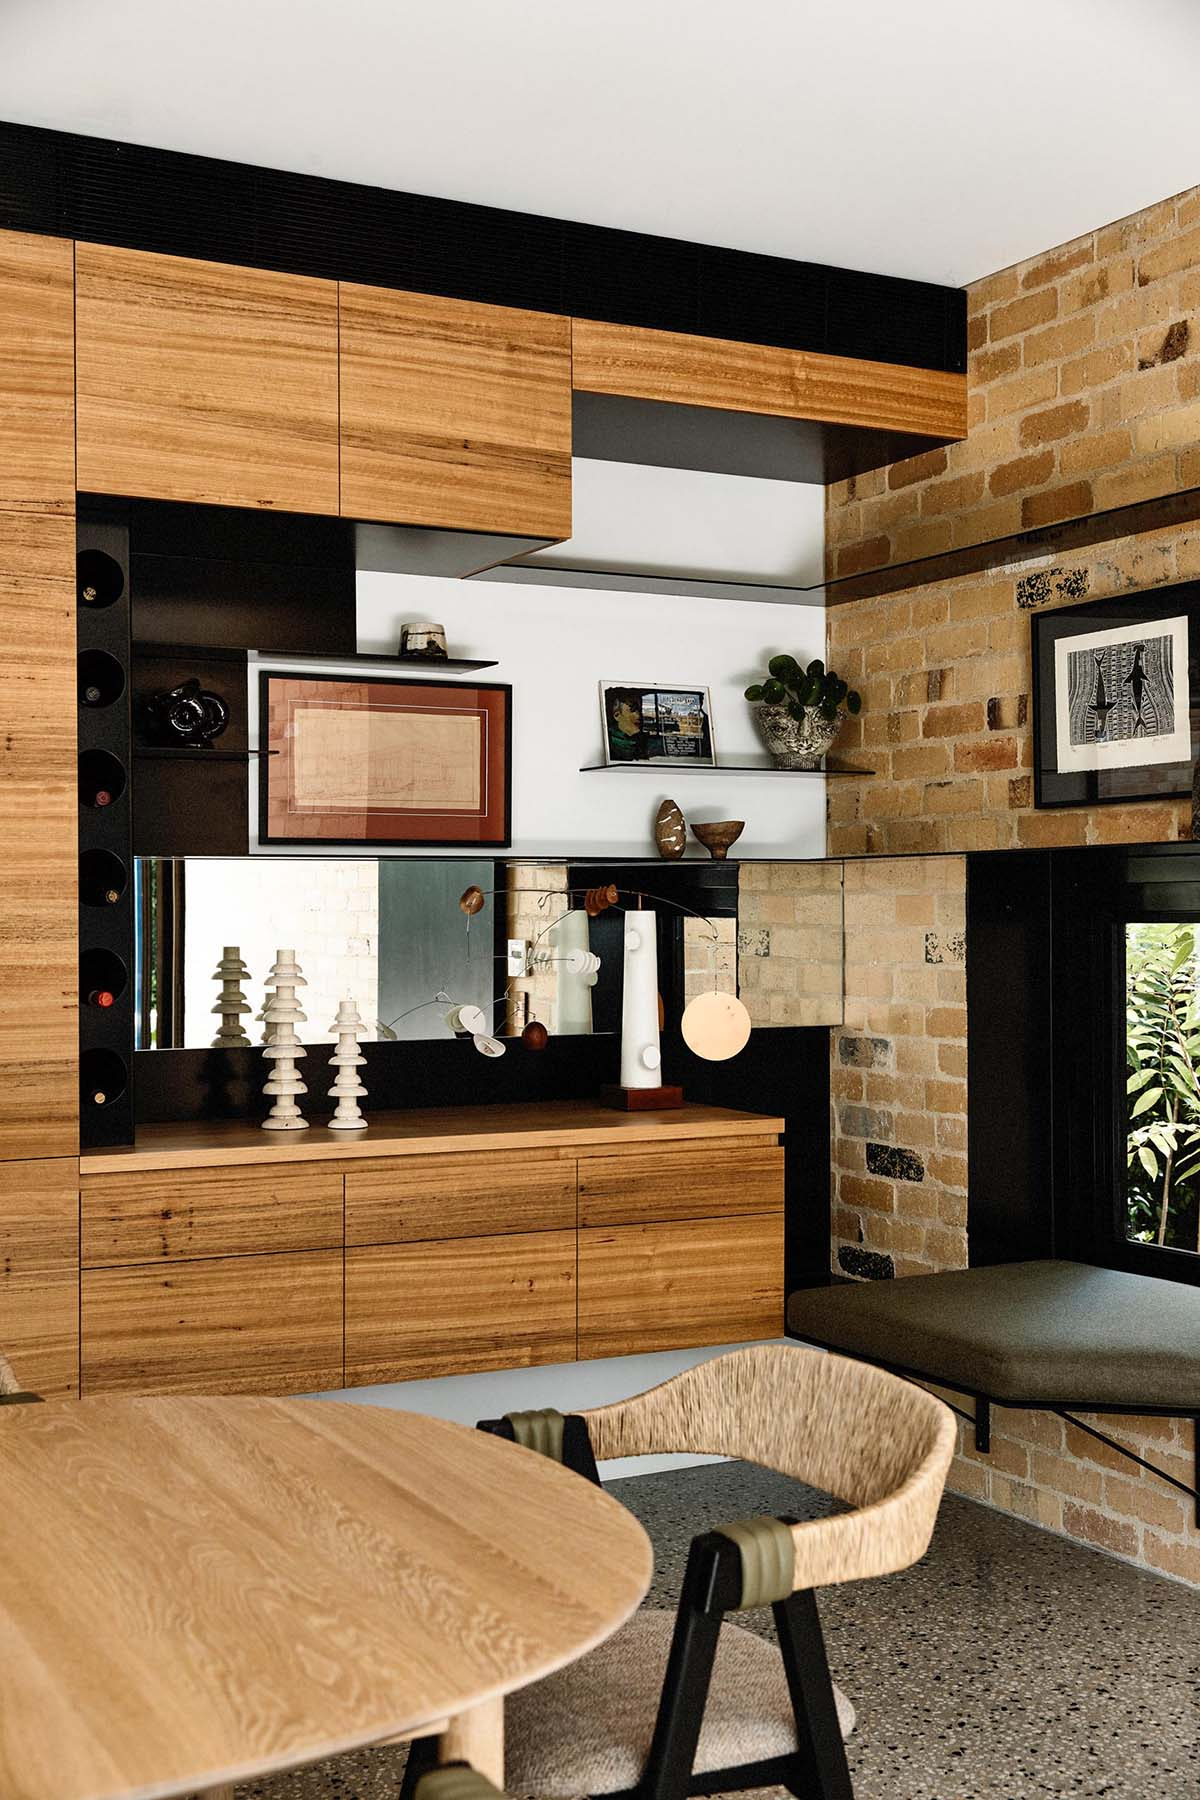 The wood cabinets from the kitchen continue through to this dining room, and result in an open niche with shelving. Beside the cabinets and in the brick wall, there's a small built-in window seat.